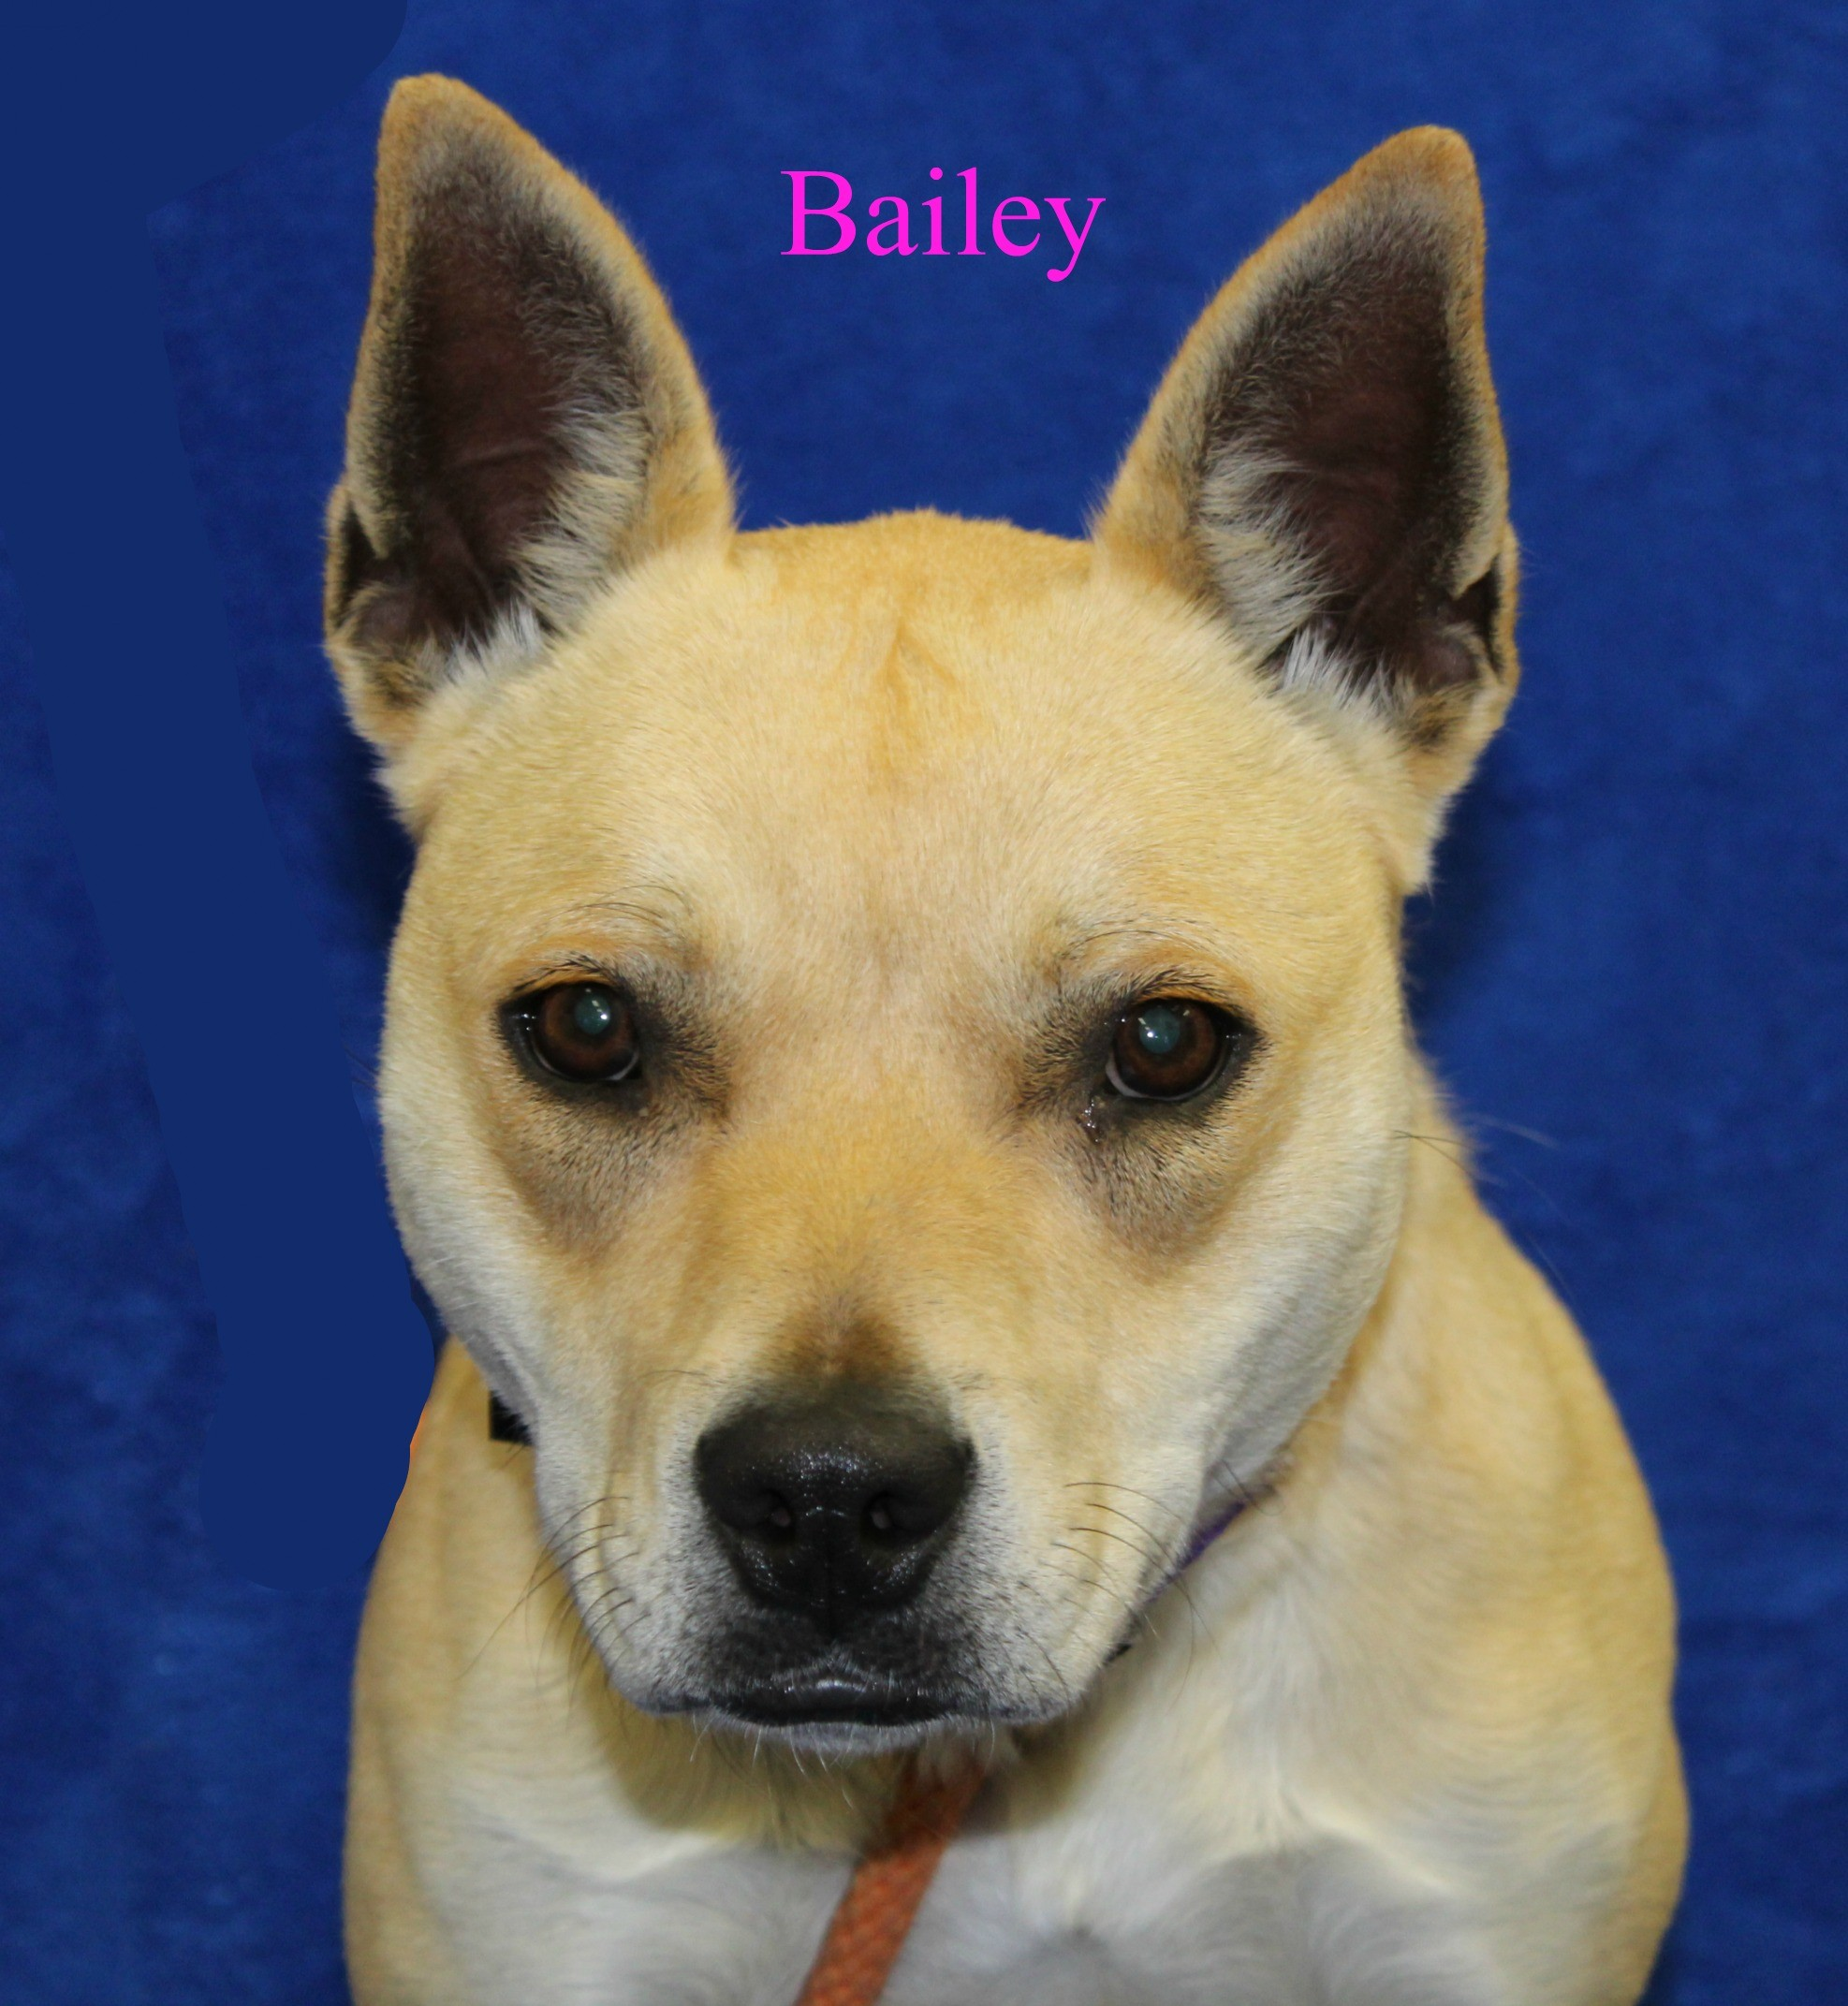 Melbourne Ky Shiba Inu Meet Bailey A Pet For Adoption